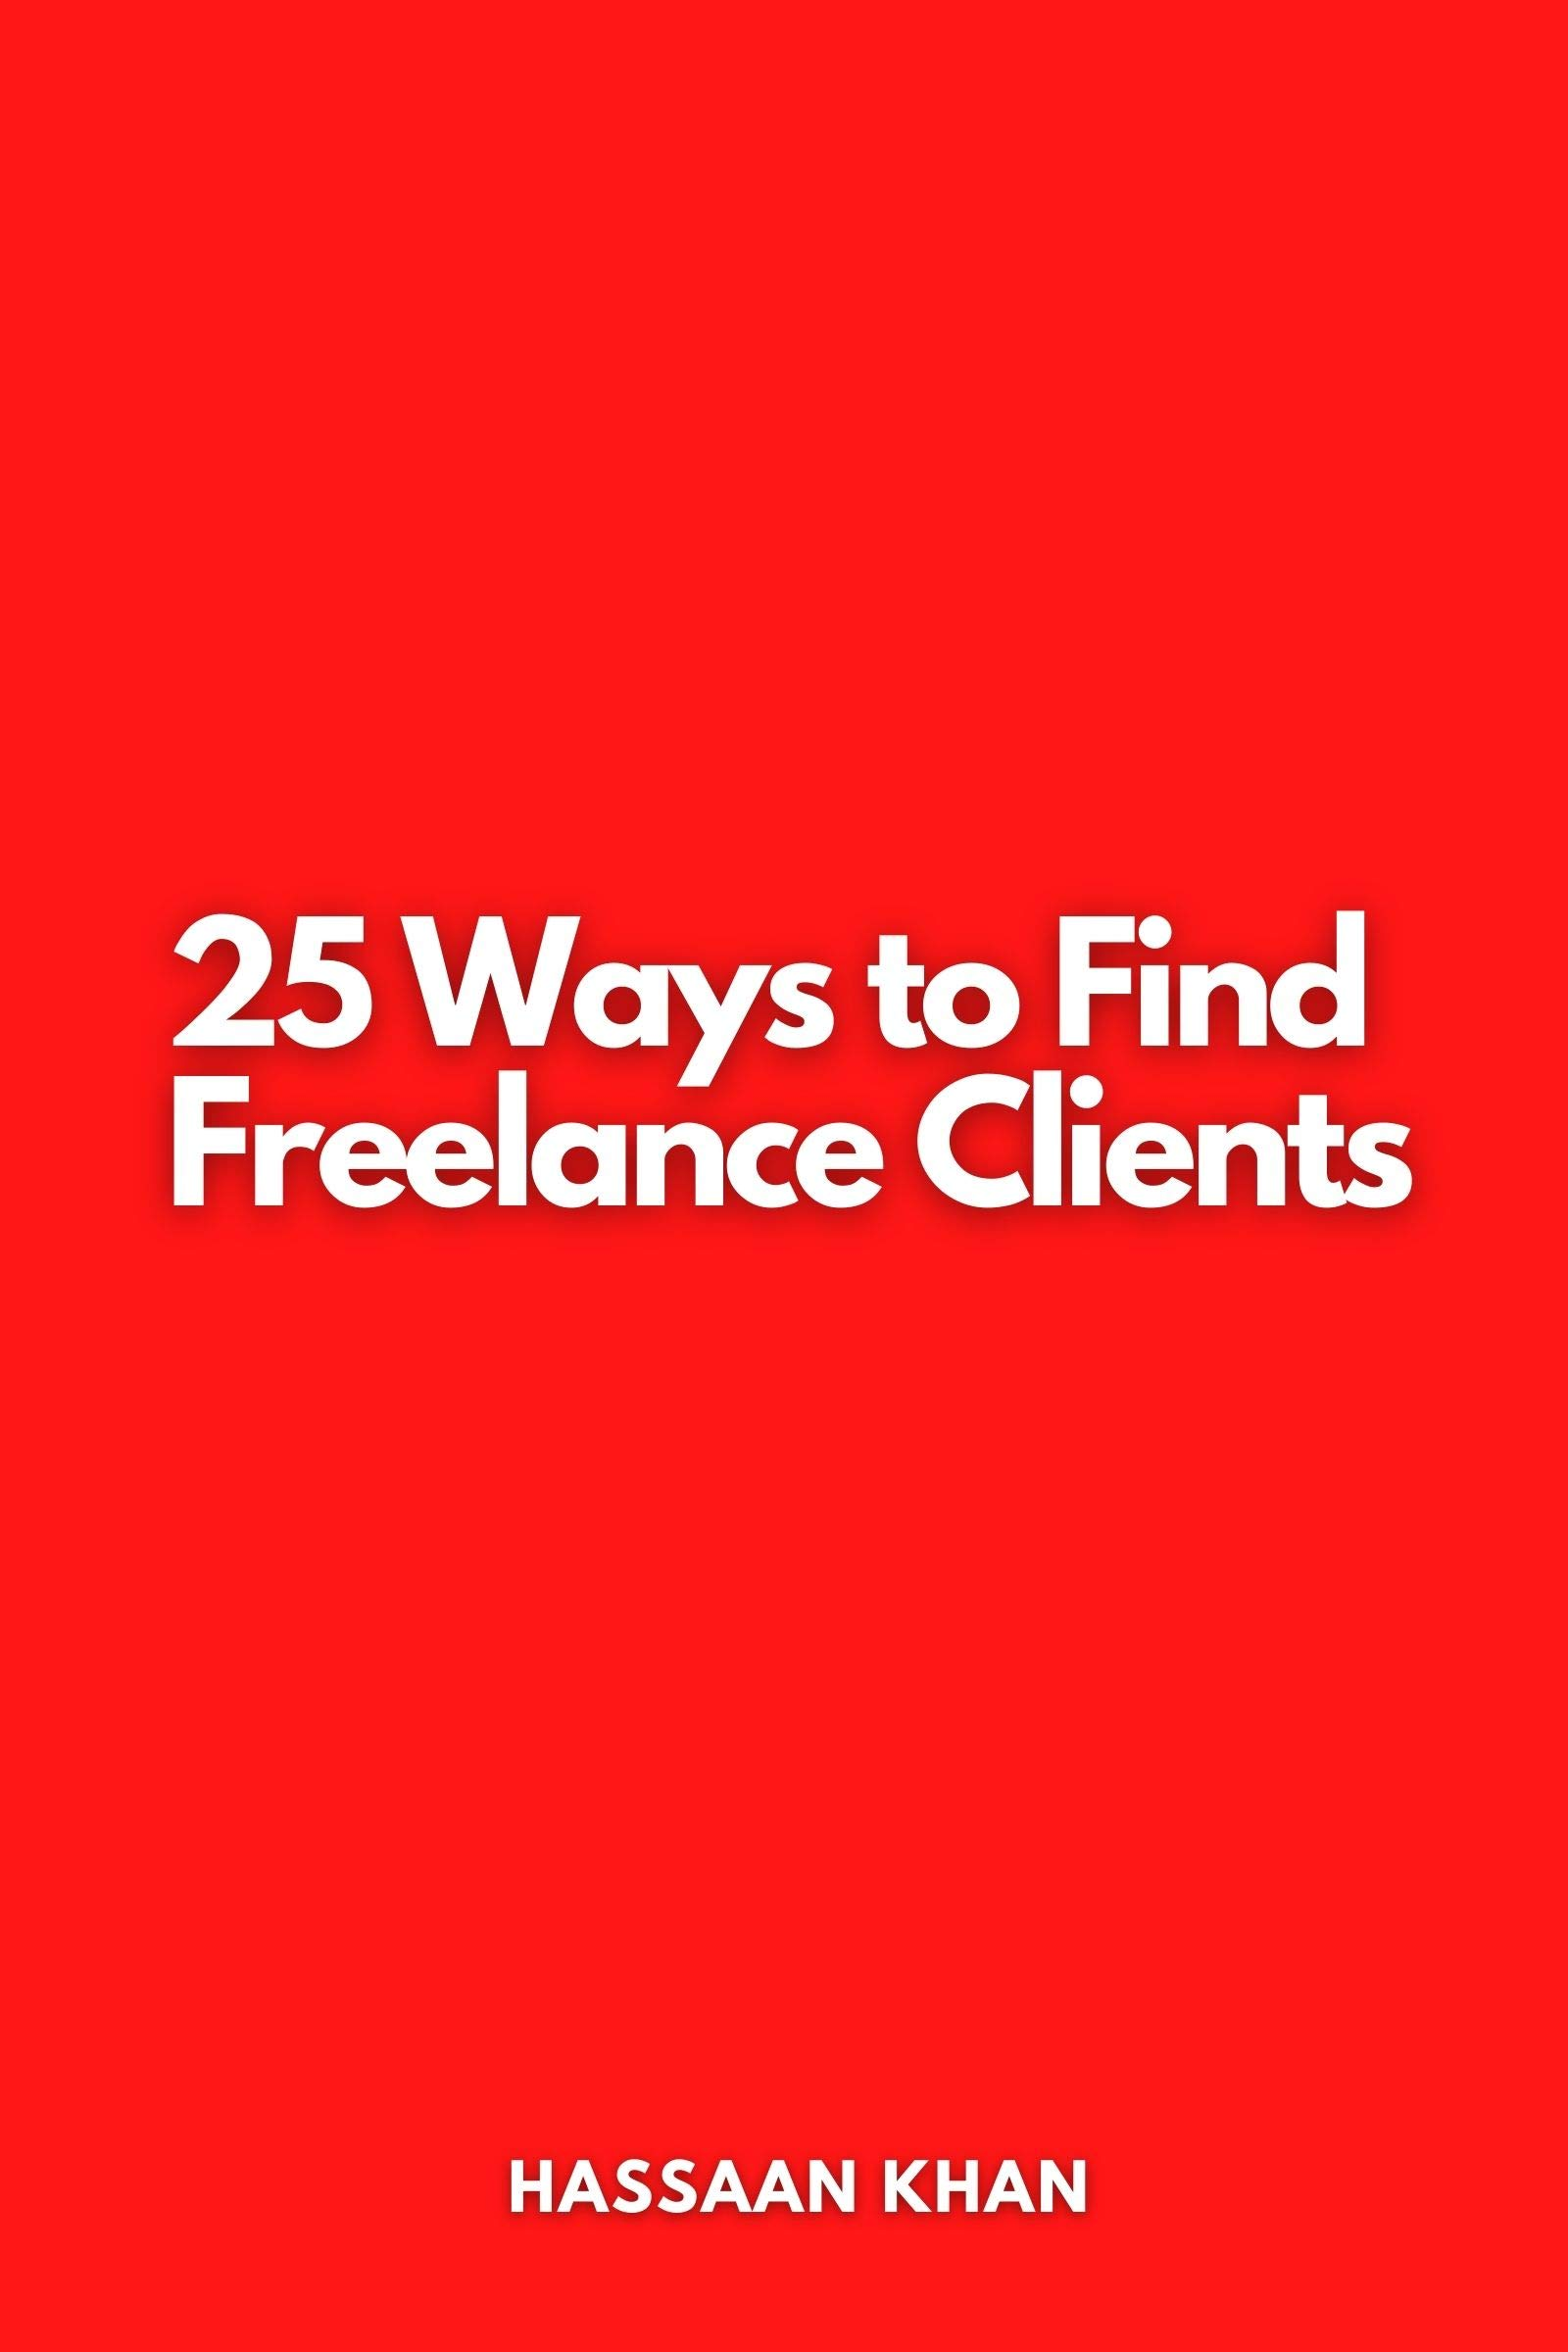 25 Ways to Find Freelance Clients